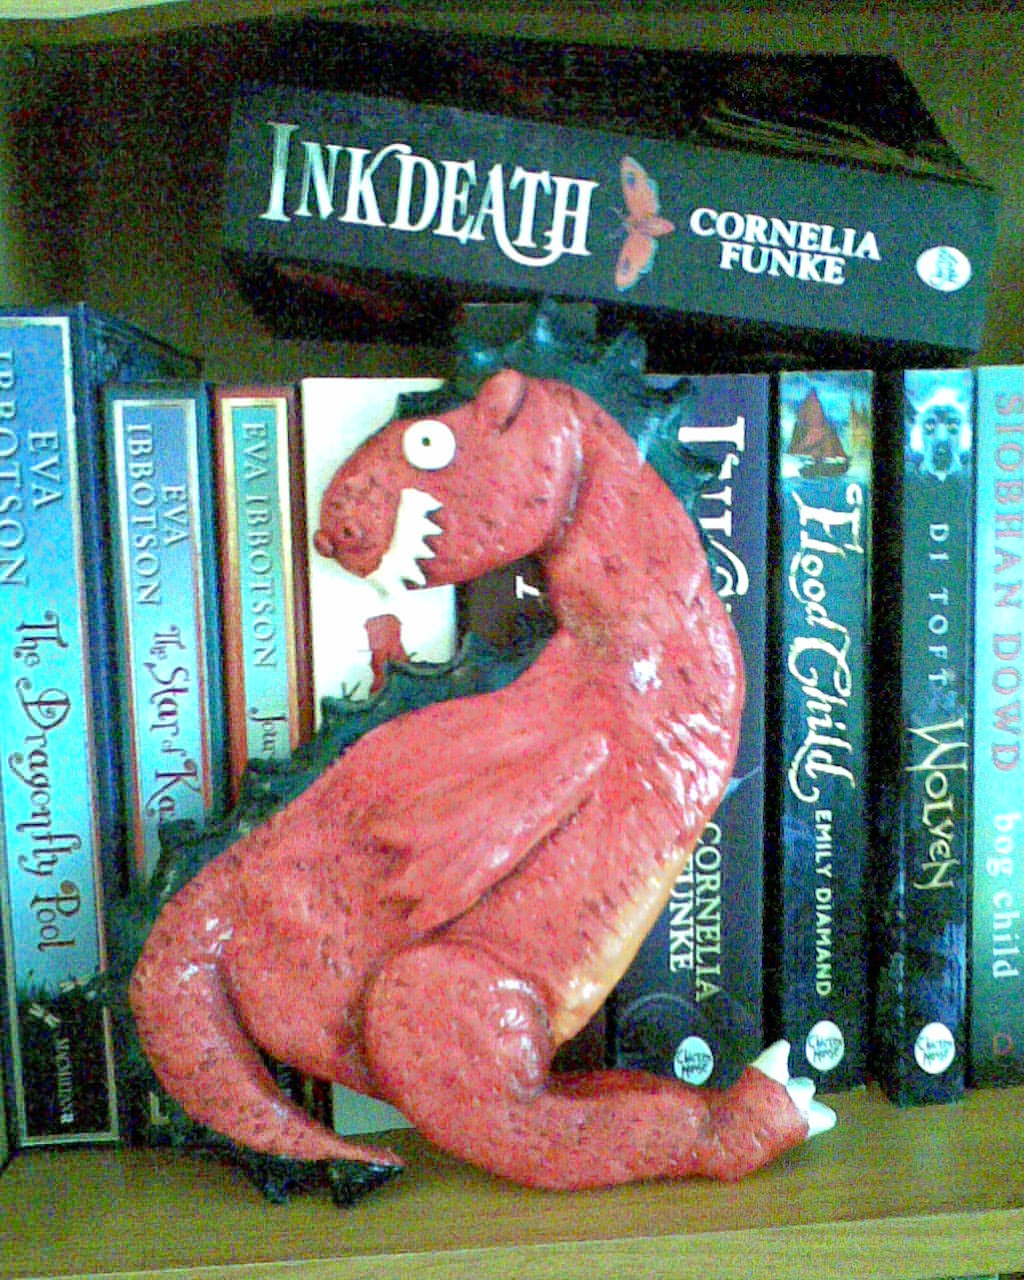 Photo of dough dragon and books on shelf